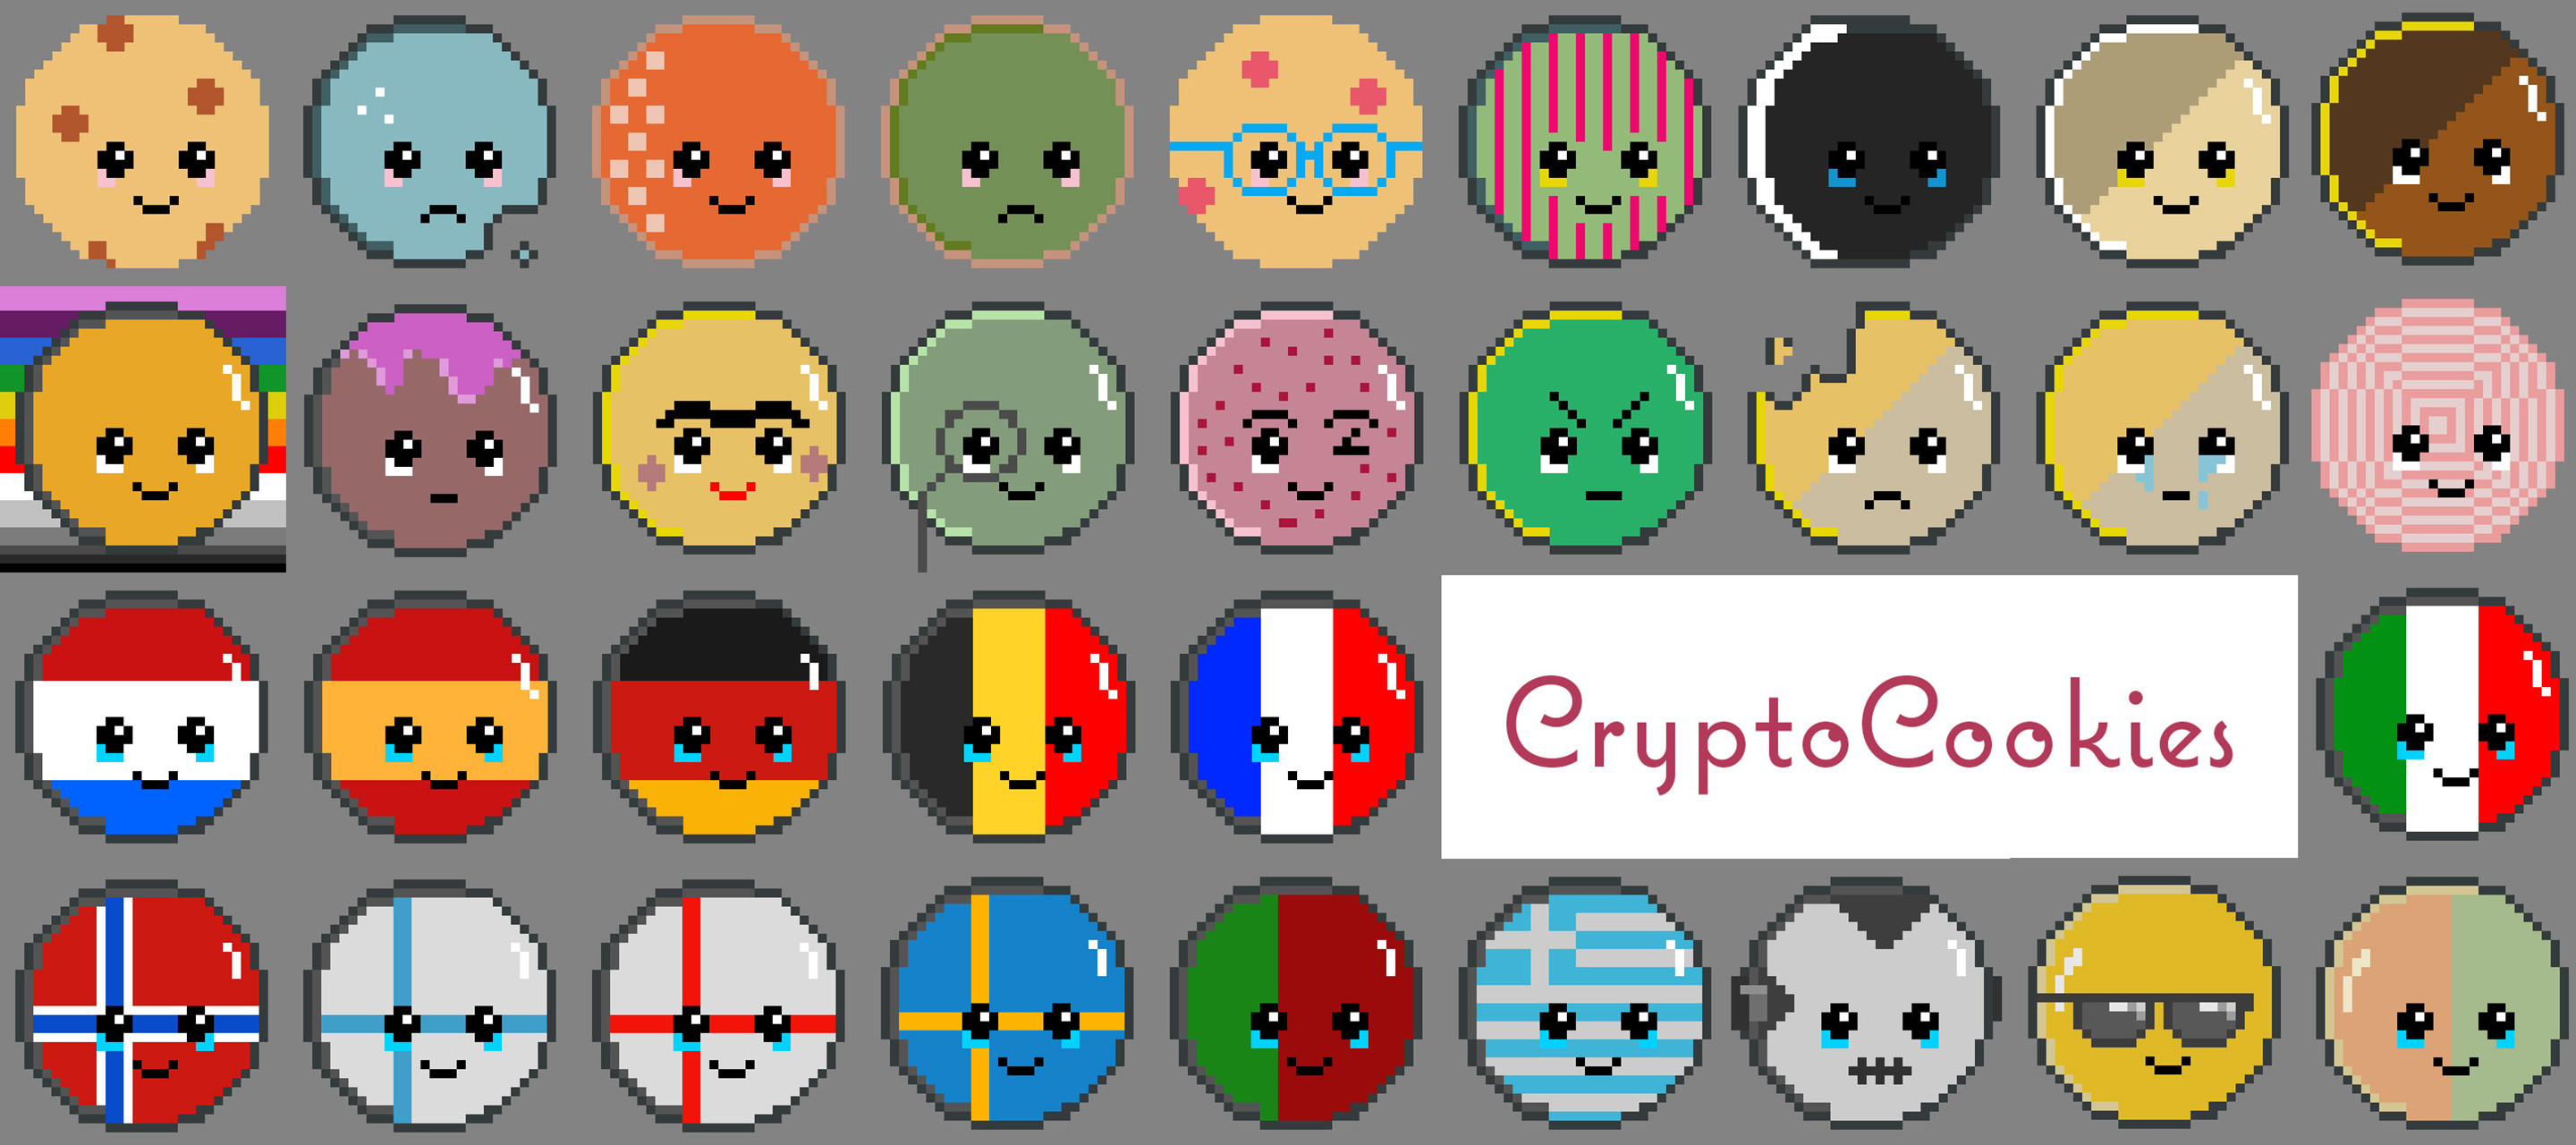 A collection of 40 PixelArt Cookies in the Ethereum Blockchain.  https://opensea.io/collection/cryptocookies-nft/